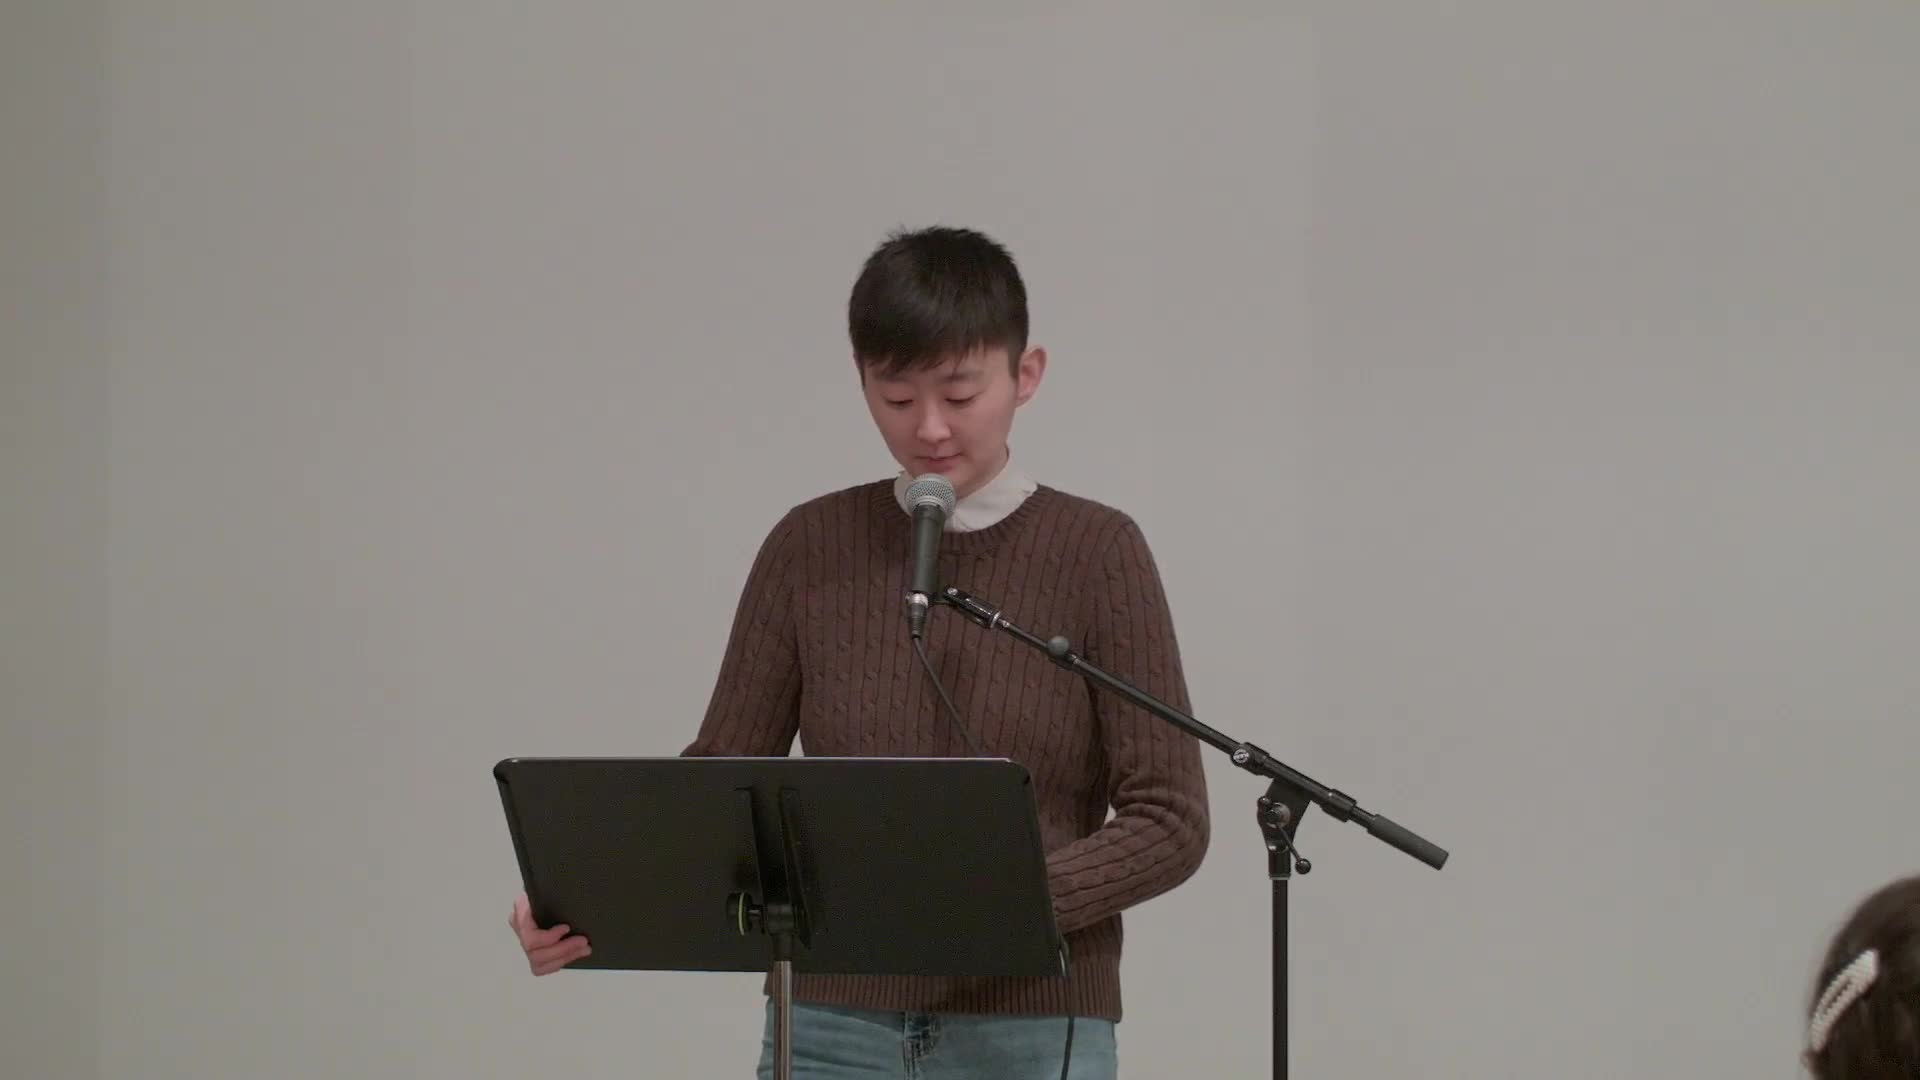 Joo Hyun Kim is shown standing against a white wall in a large room with metal columns, facing the camera and an audience seated in wooden folding chairs.  They read their text from a music stand in front of them and speak into a microphone.  The camera occasionally zooms in to show them from the waist up, then returns to filming the whole room.